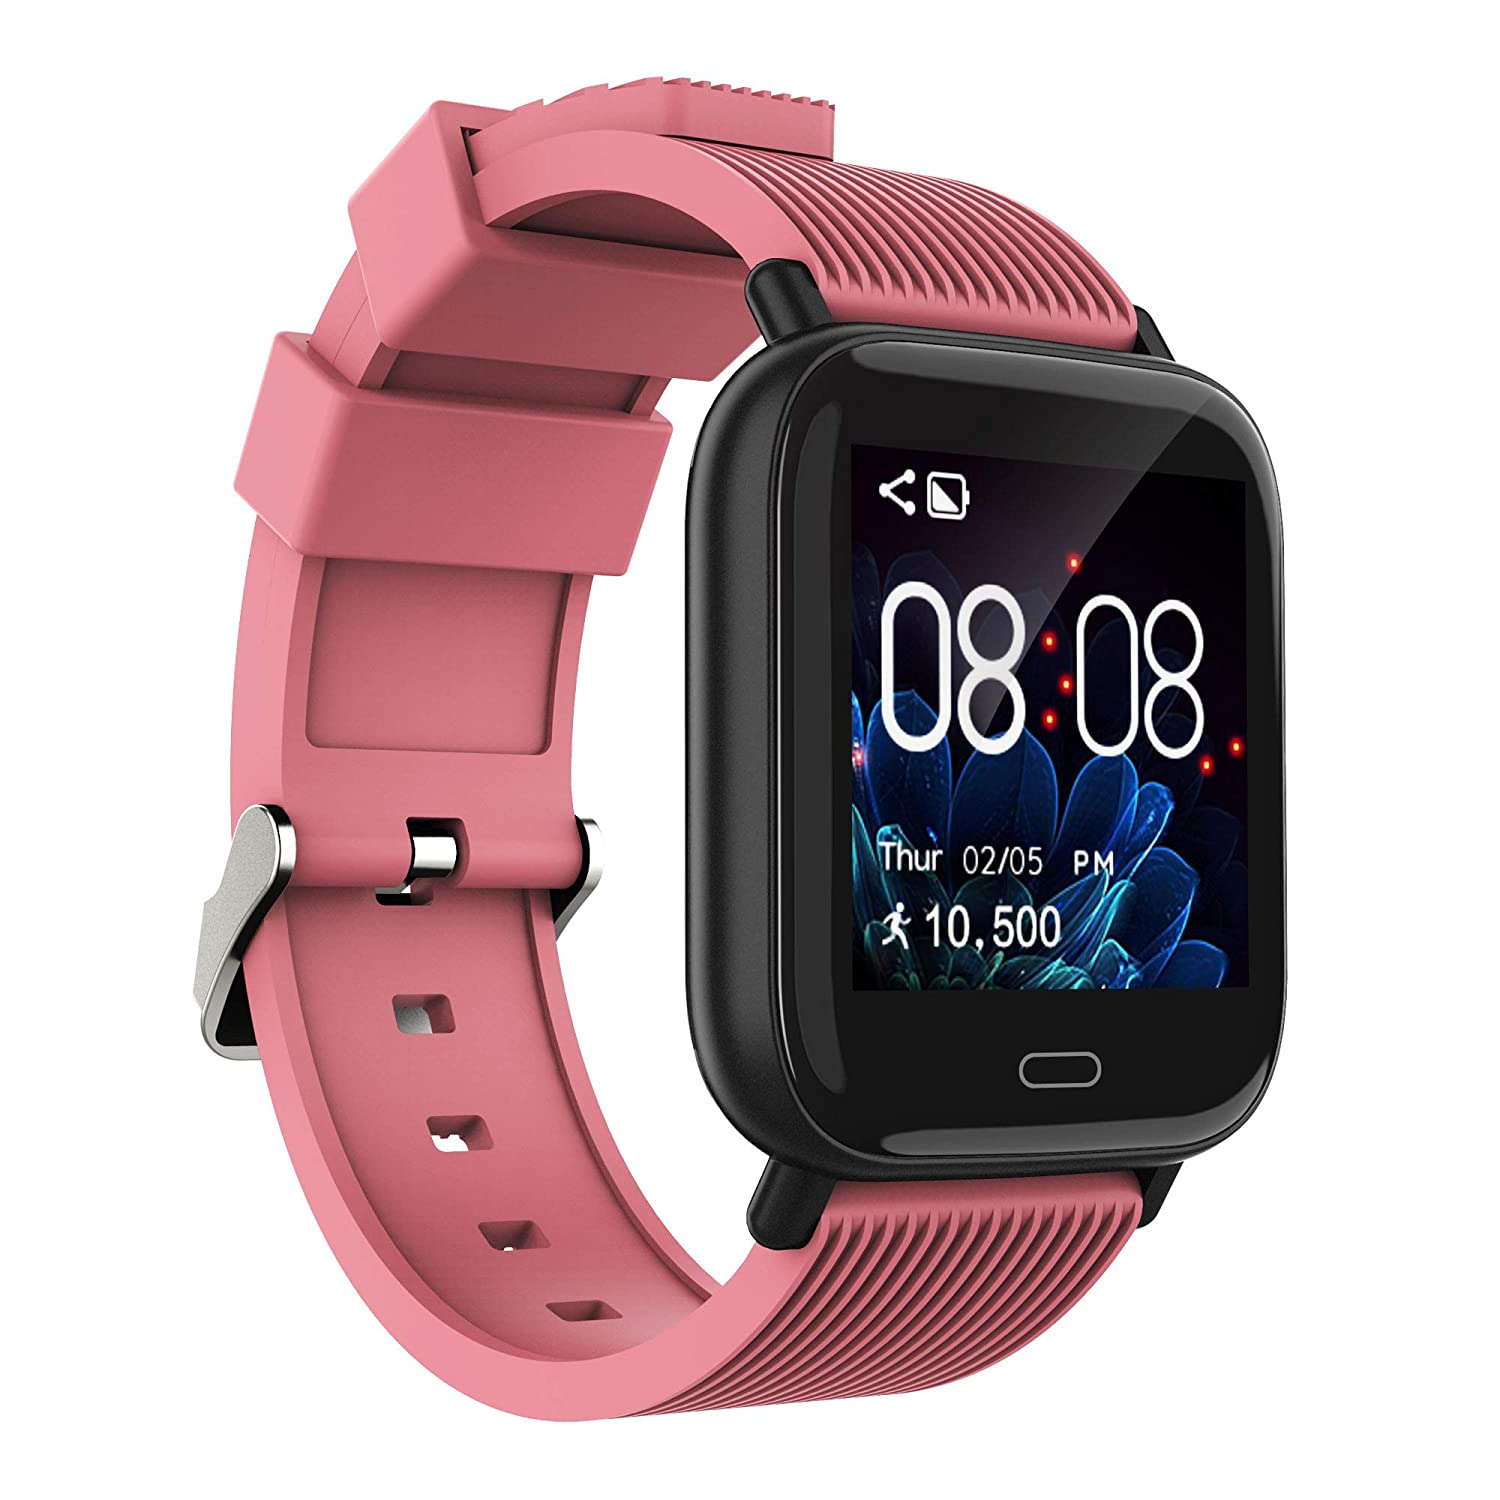 Amazon.com : Grist CC Smart Watch IP67 Waterproof Fitness ...